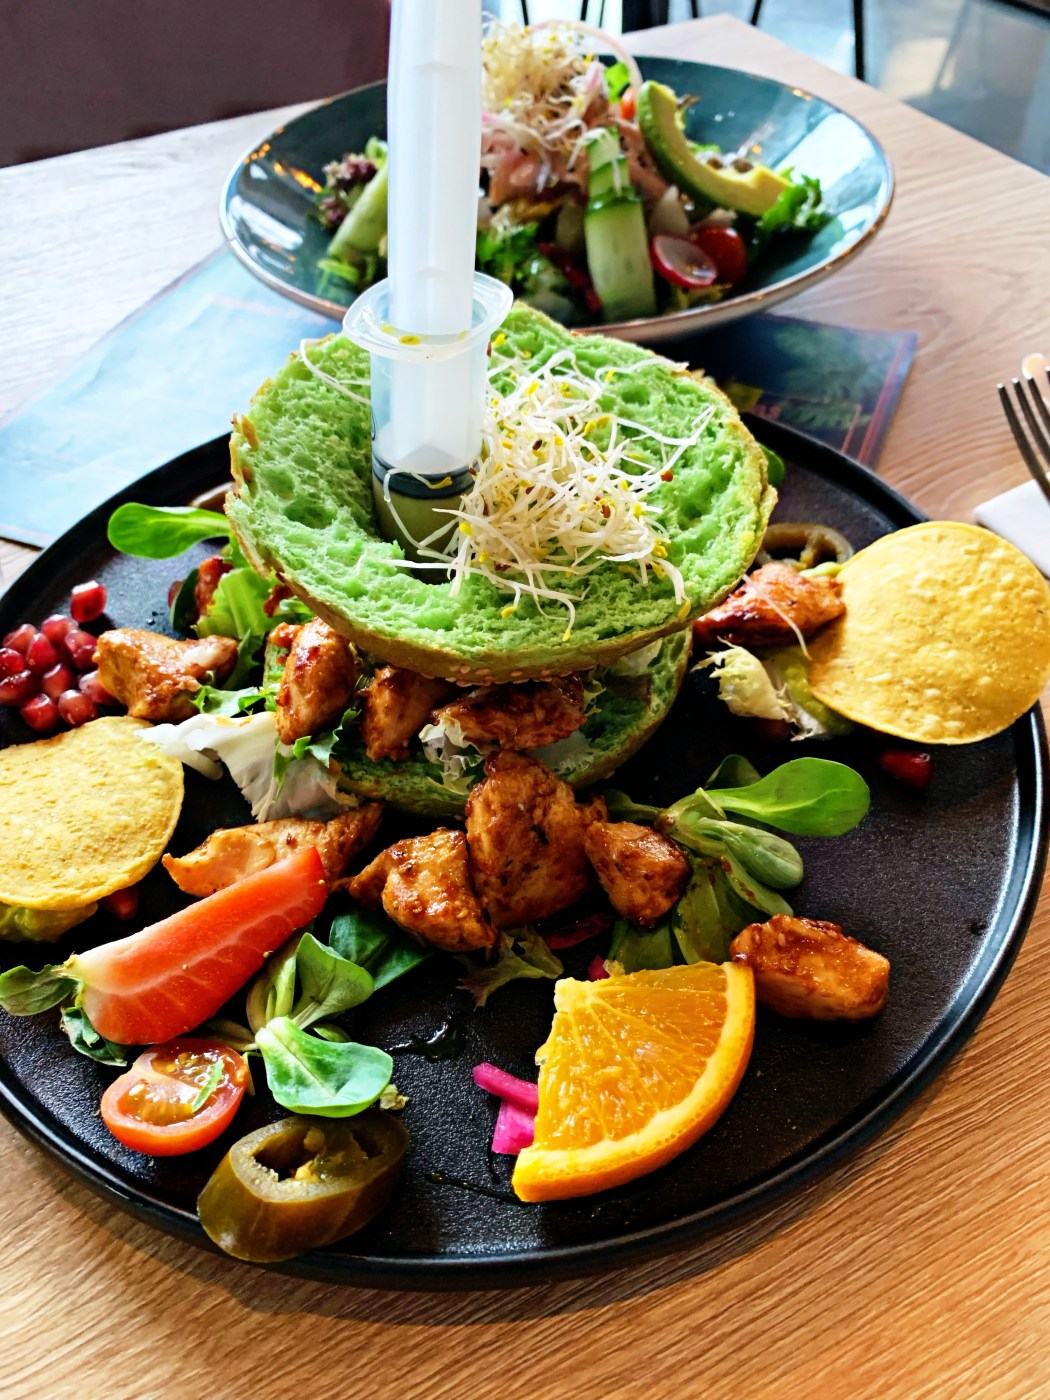 Chicken with an injection of avocado